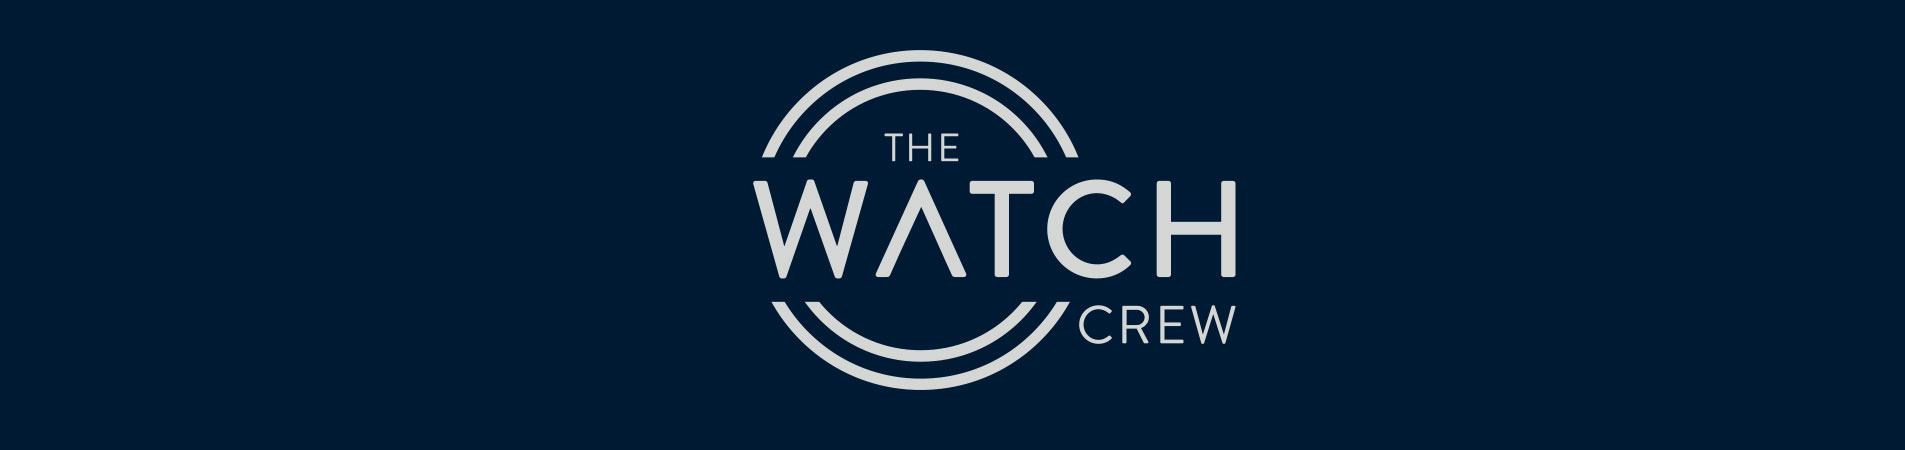 The Watch Crew goes live